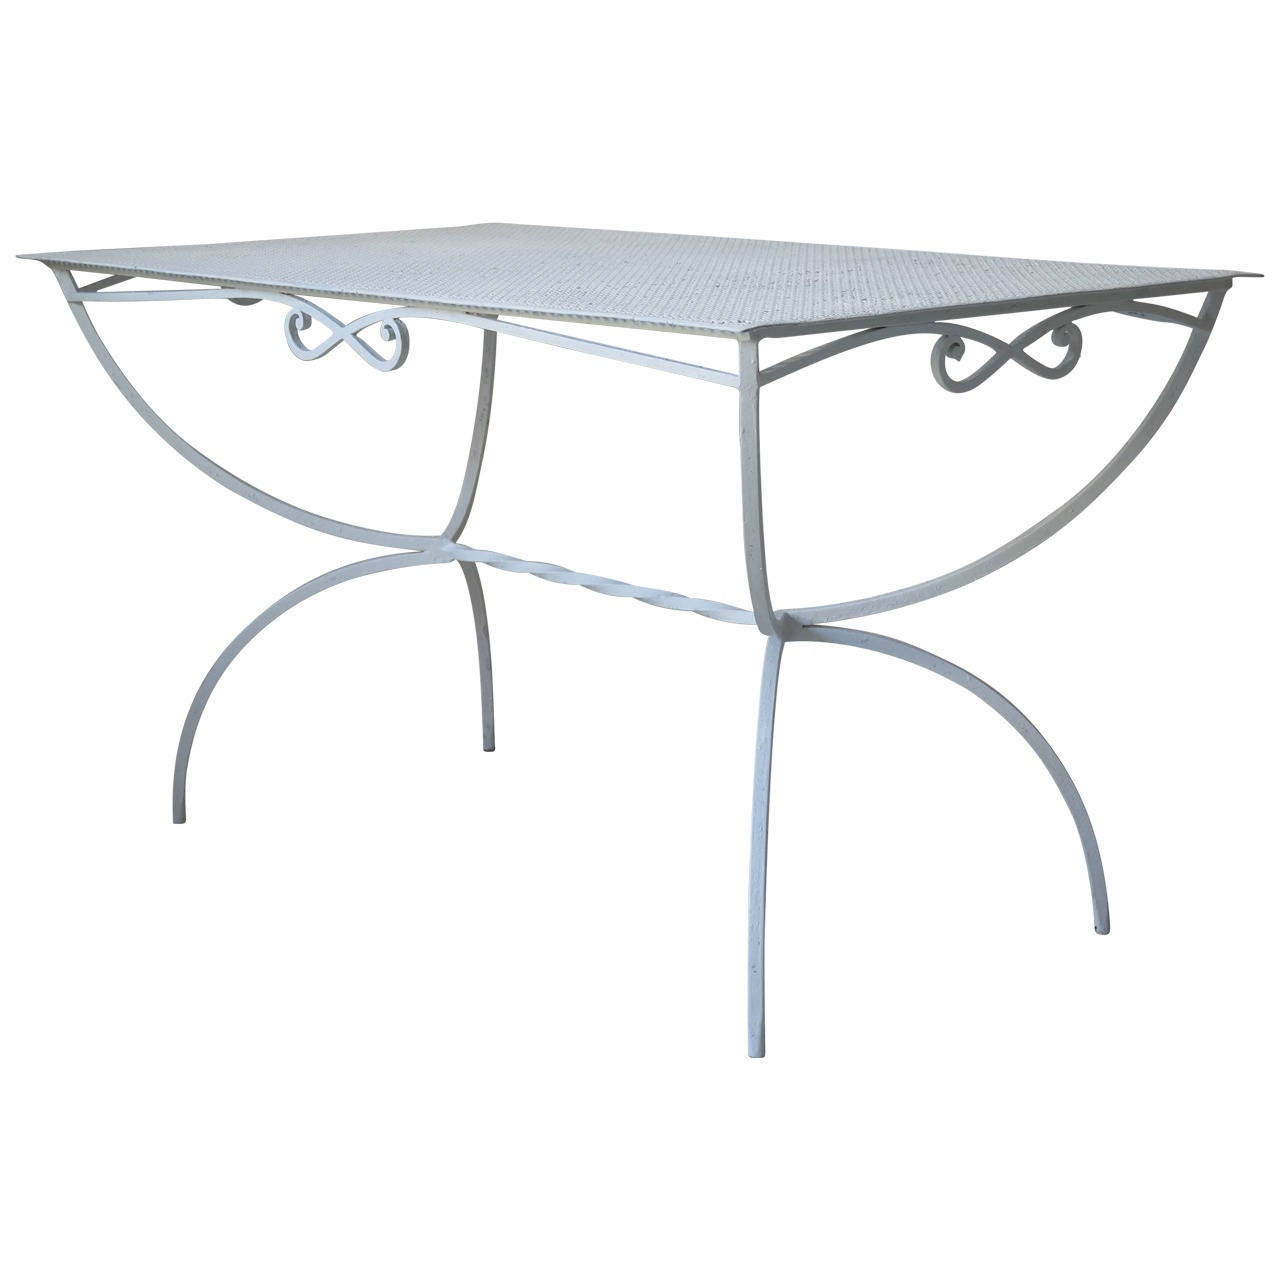 Outdoor Dining Table by Maison Jansen, France, 1950s